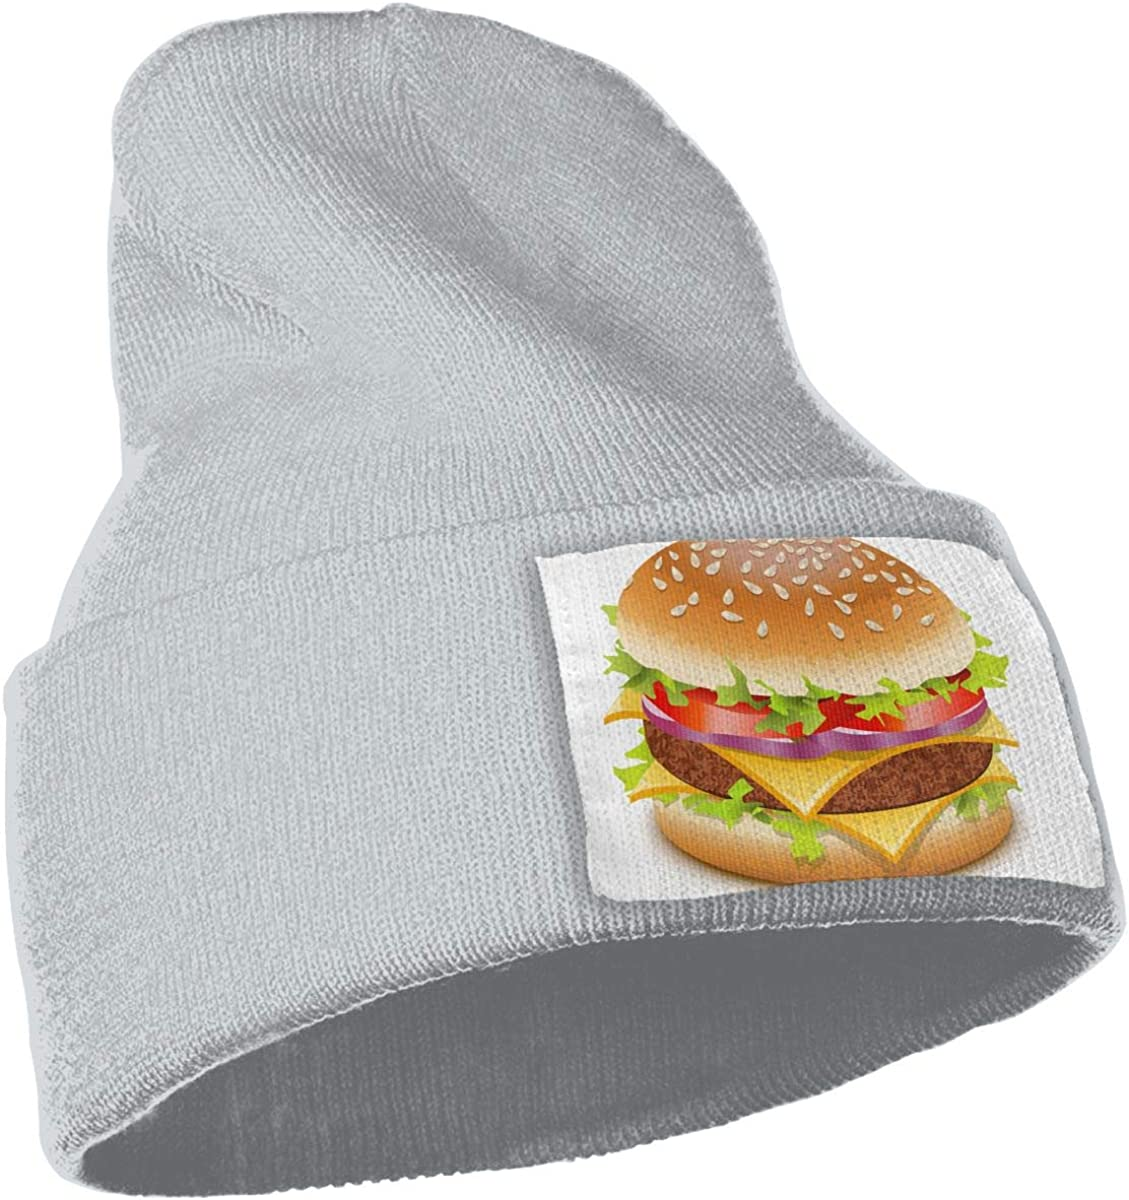 Burger Love Delicious Unisex Fashion Knitted Hat Luxury Hip-Hop Cap